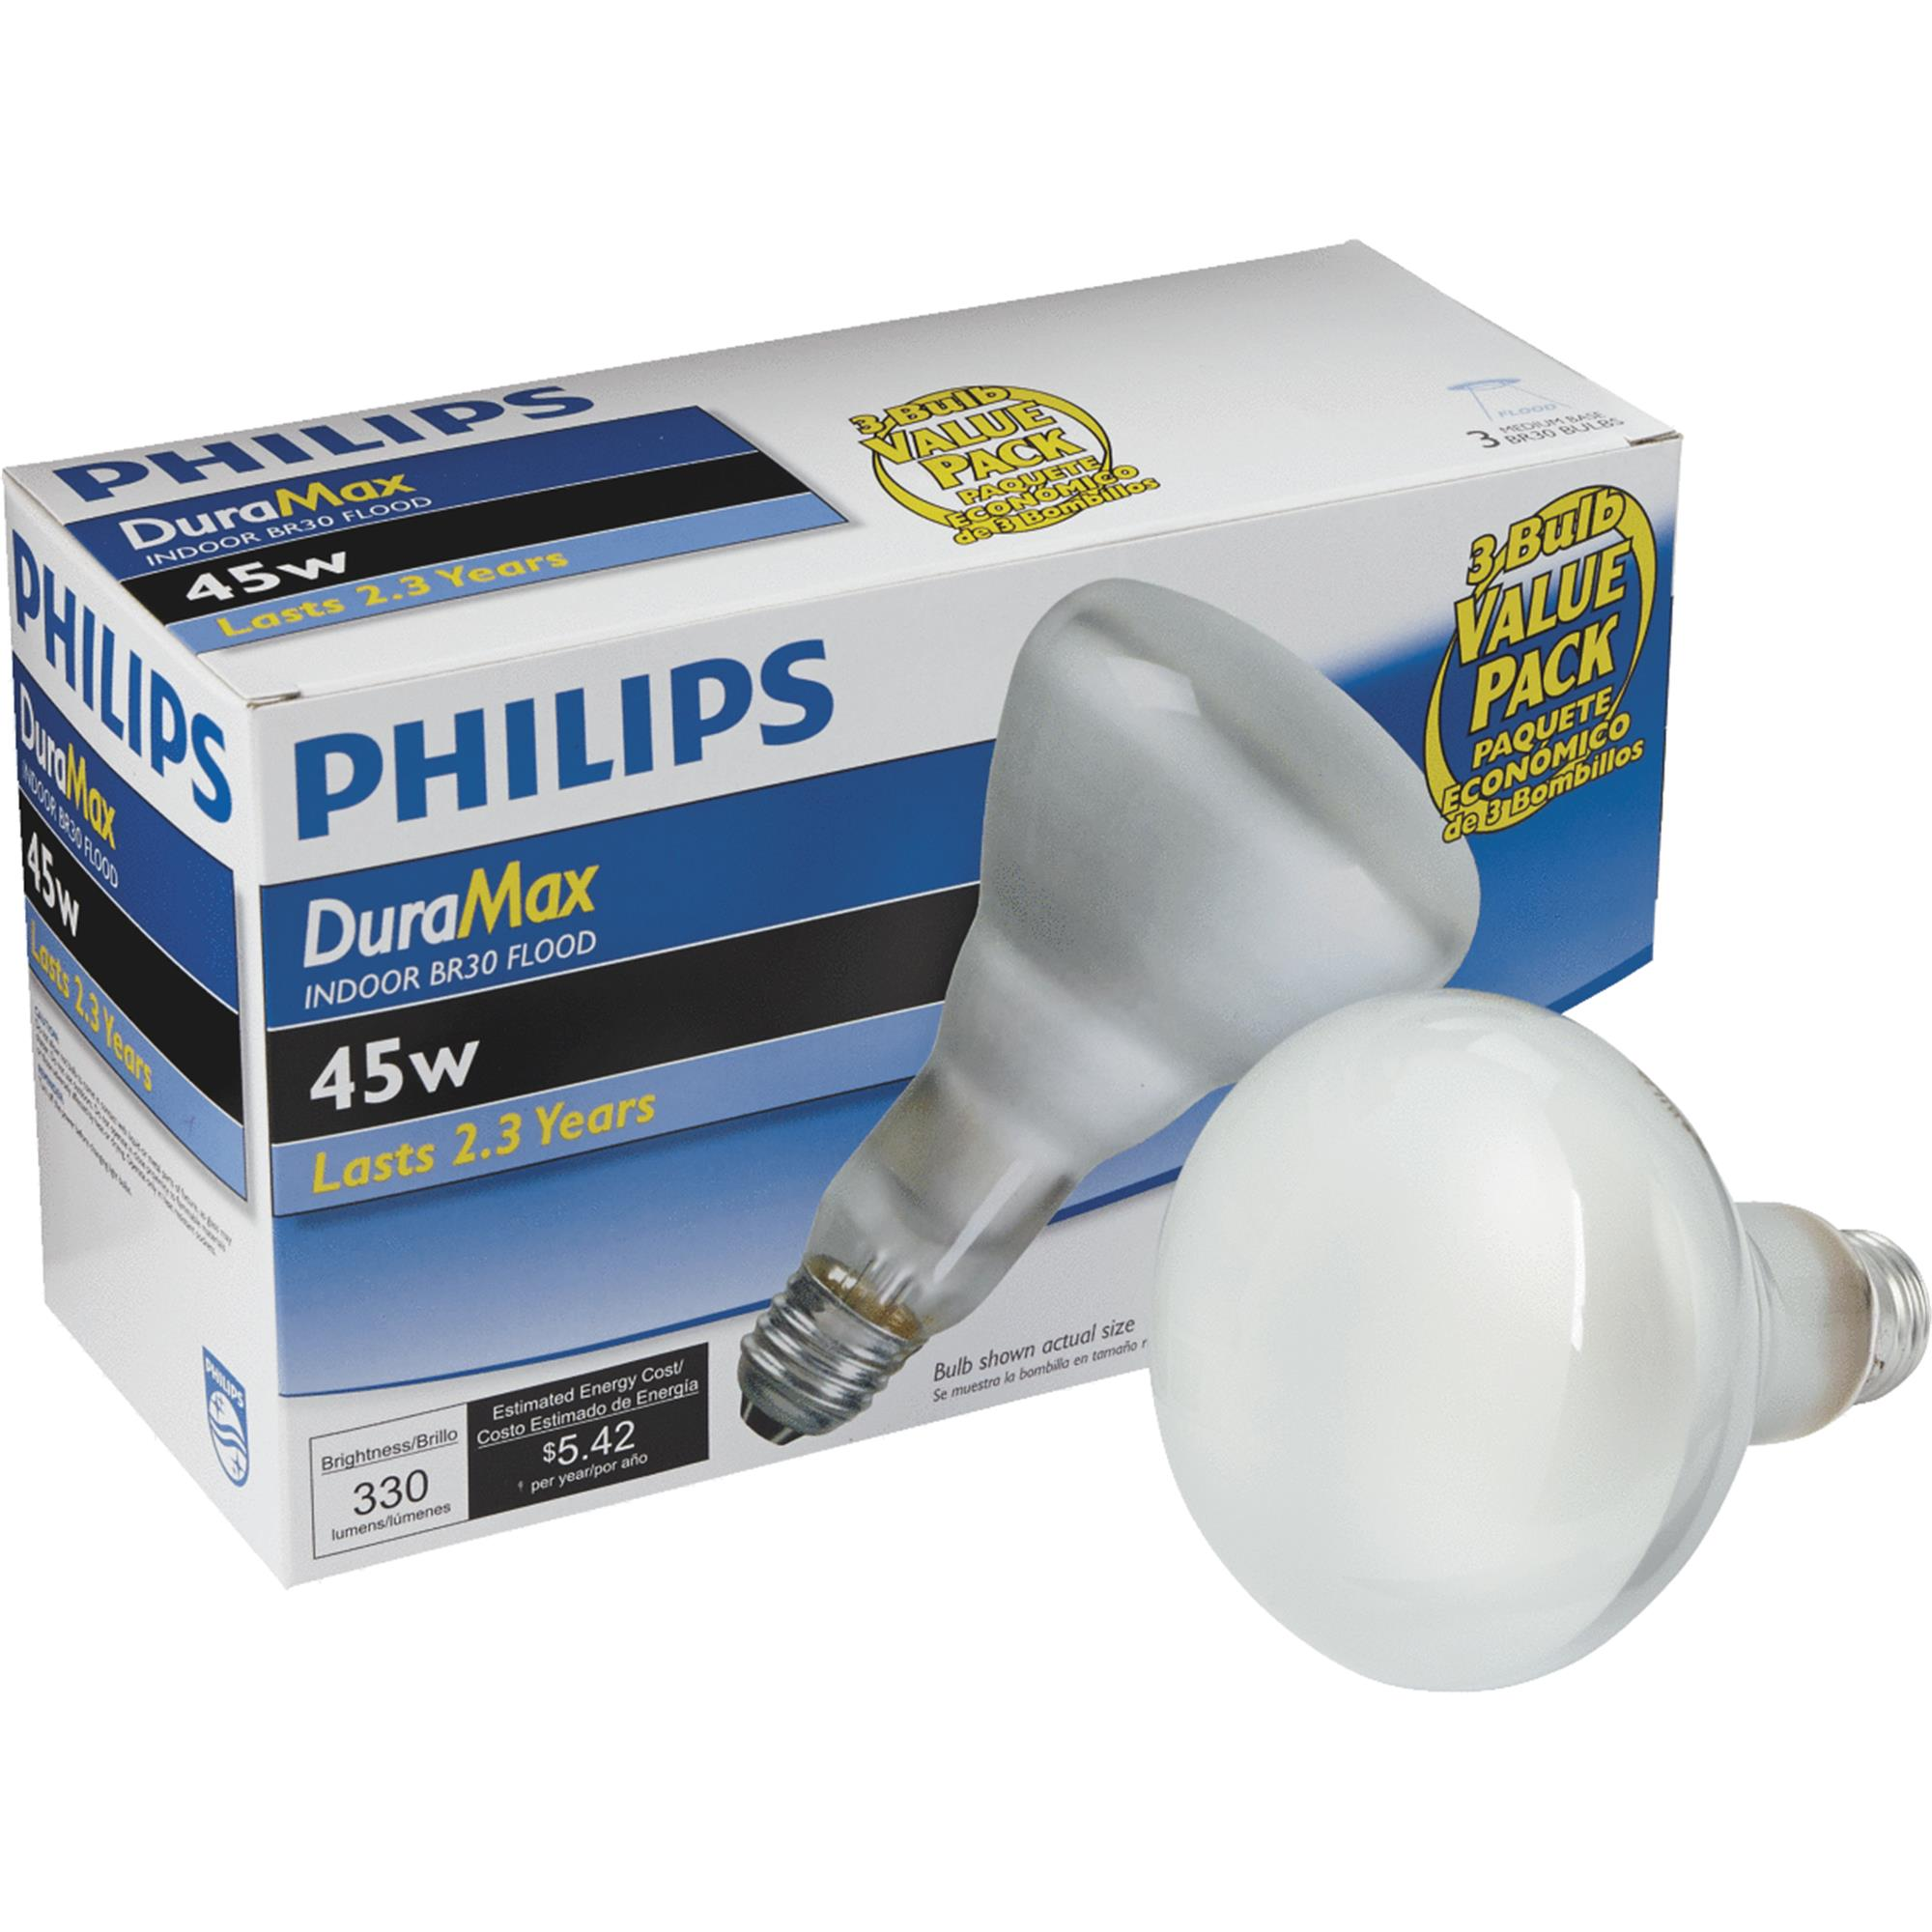 Philips DuraMax BR30 Incandescent Floodlight Light Bulb